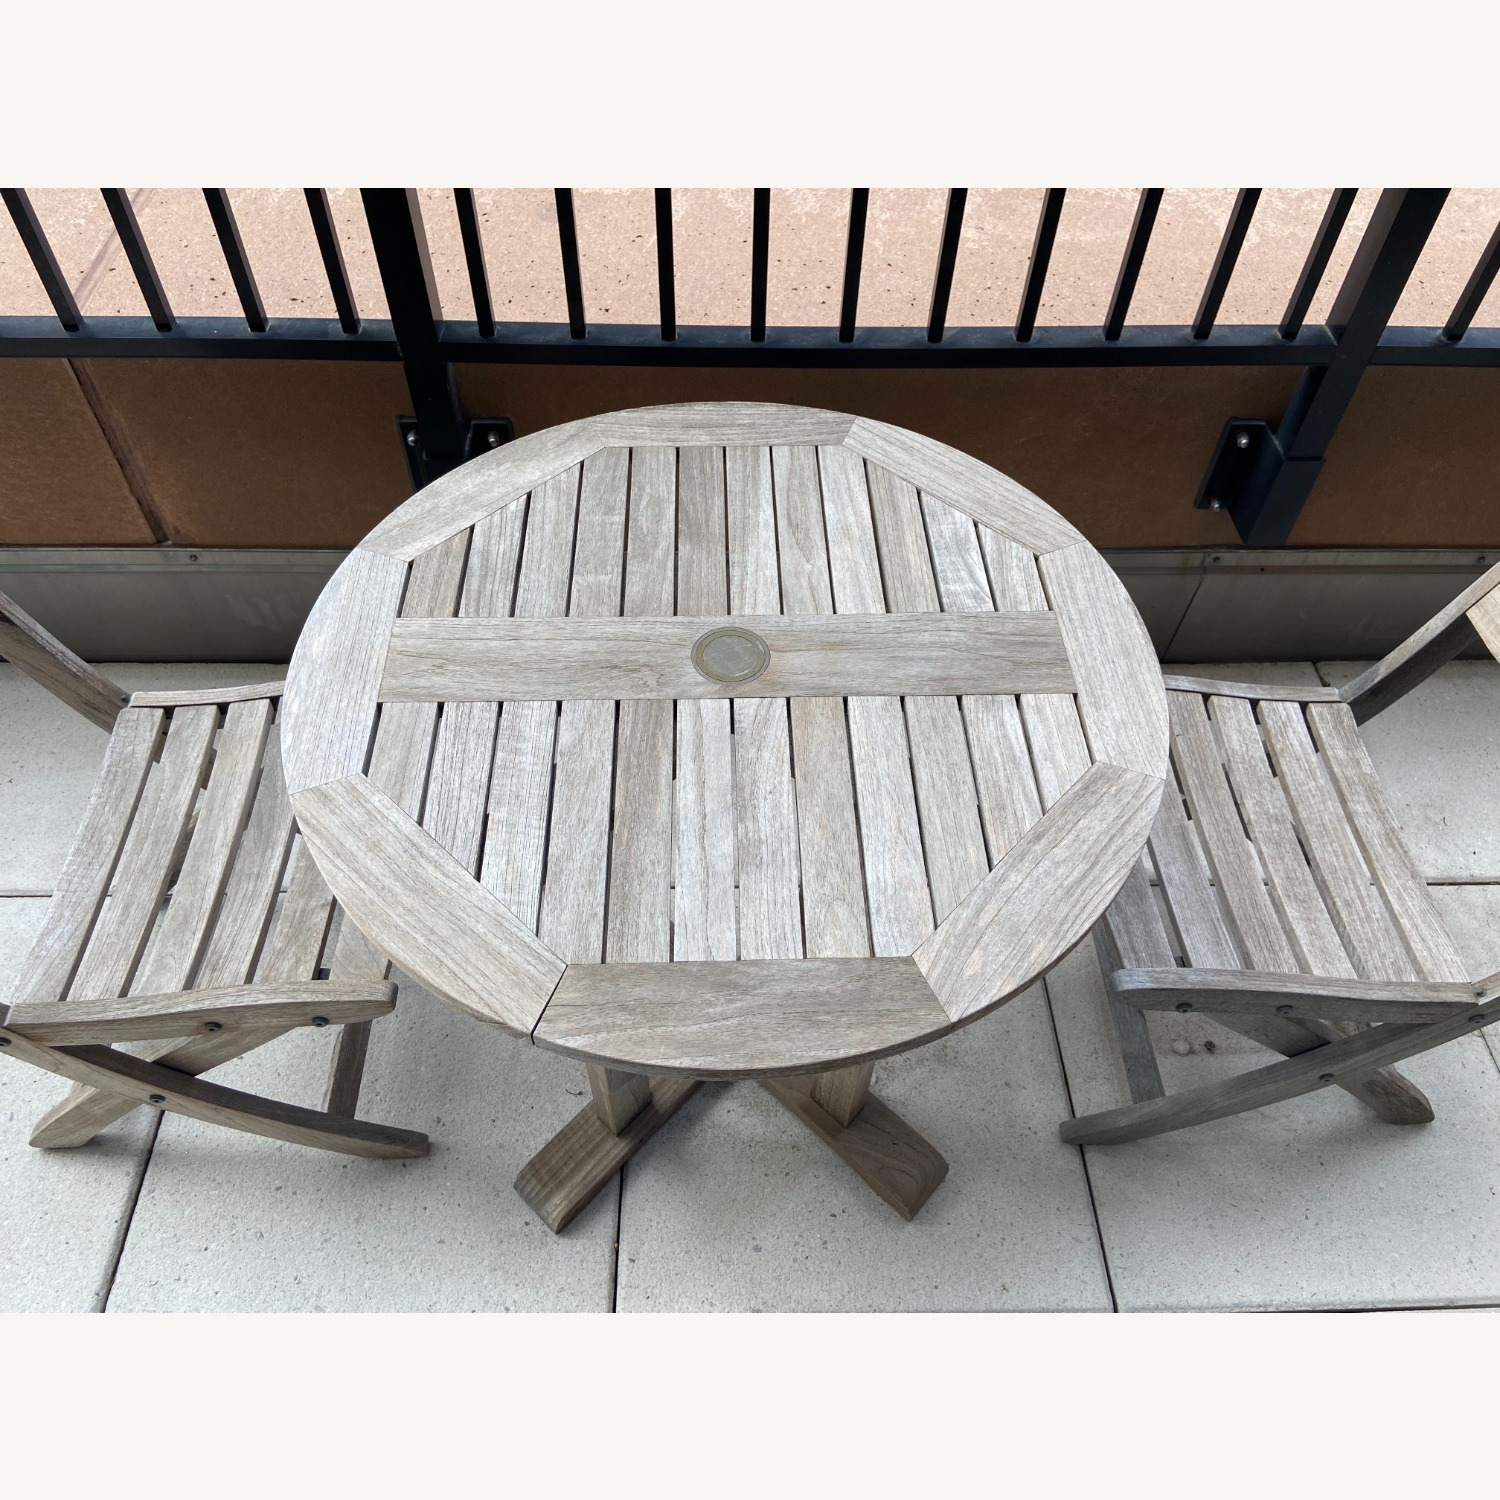 RockWood Outdoor Cafe Table and Chairs - image-4